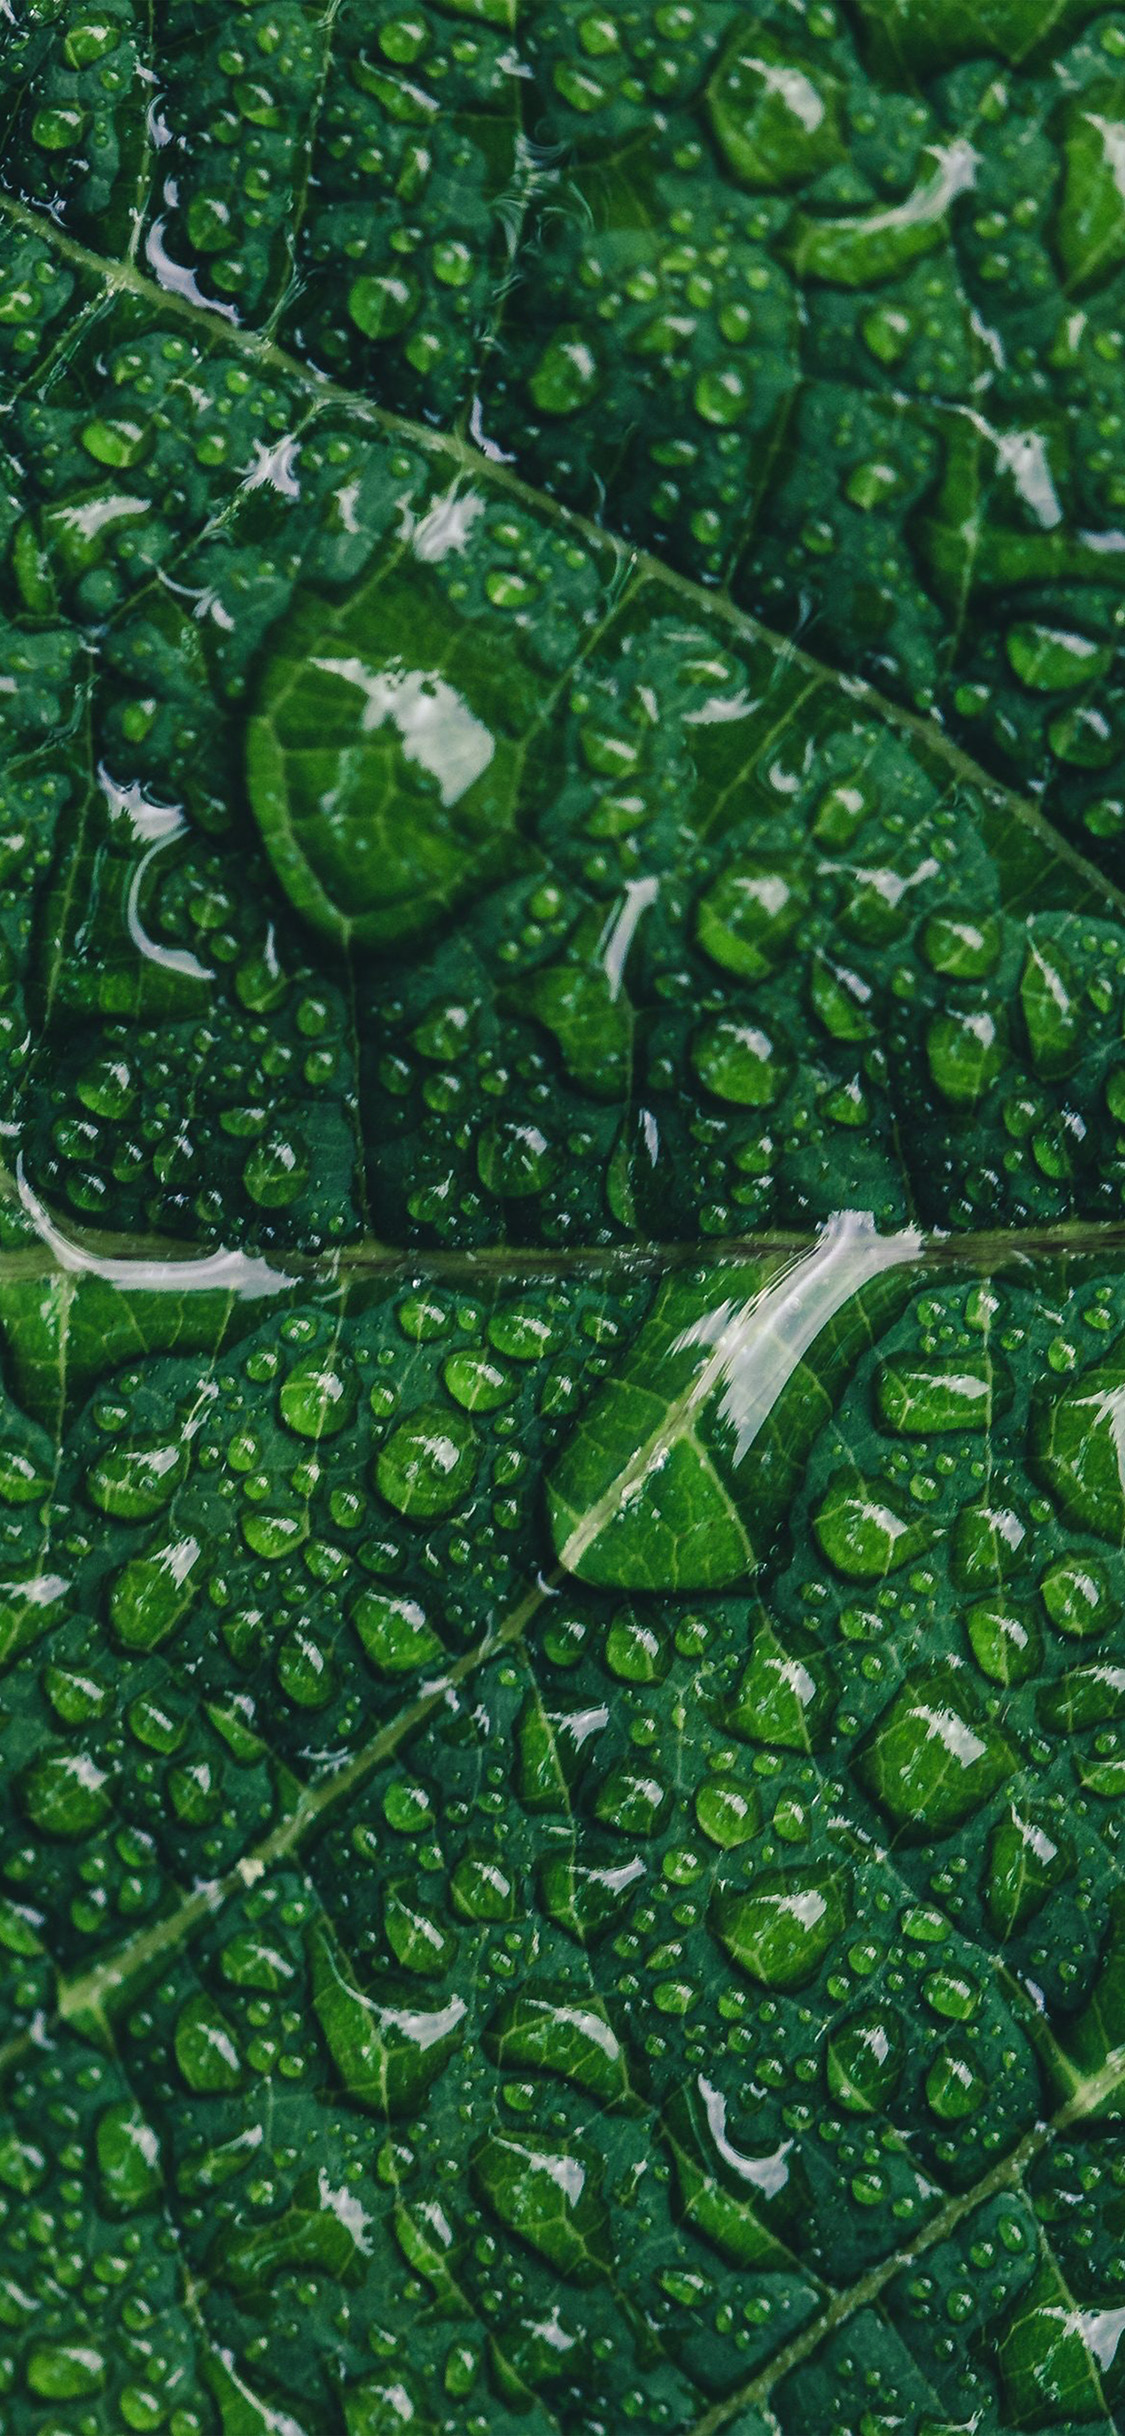 iPhonexpapers.com-Apple-iPhone-wallpaper-ny89-green-leaf-rain-nature-tree